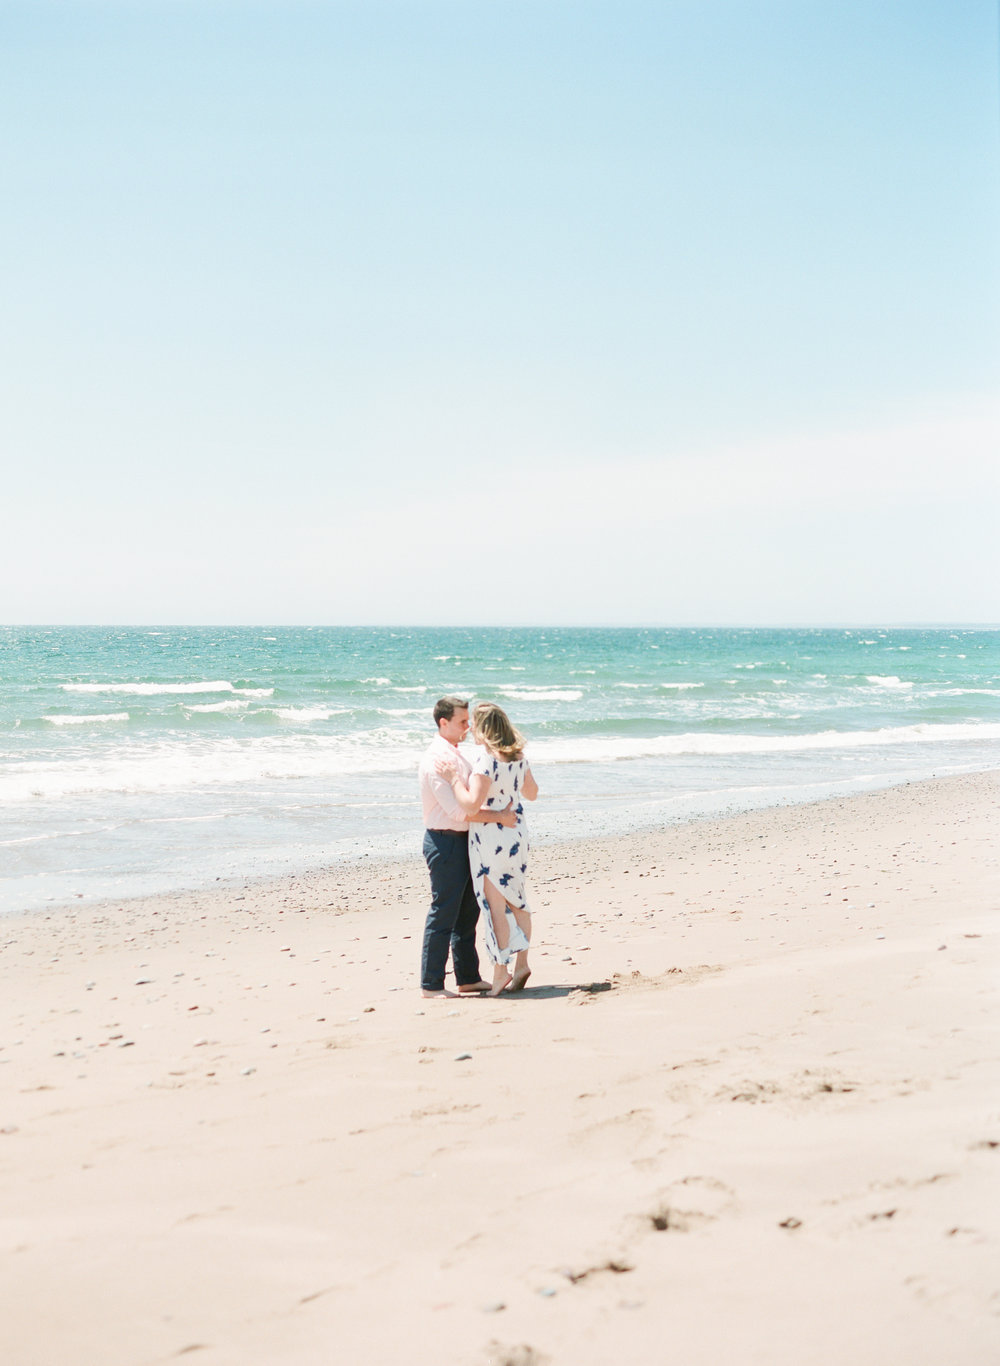 Jacqueline Anne Photography-Melissa and Daniel - Contax 645 - Beach Full Sun-24-12.jpg